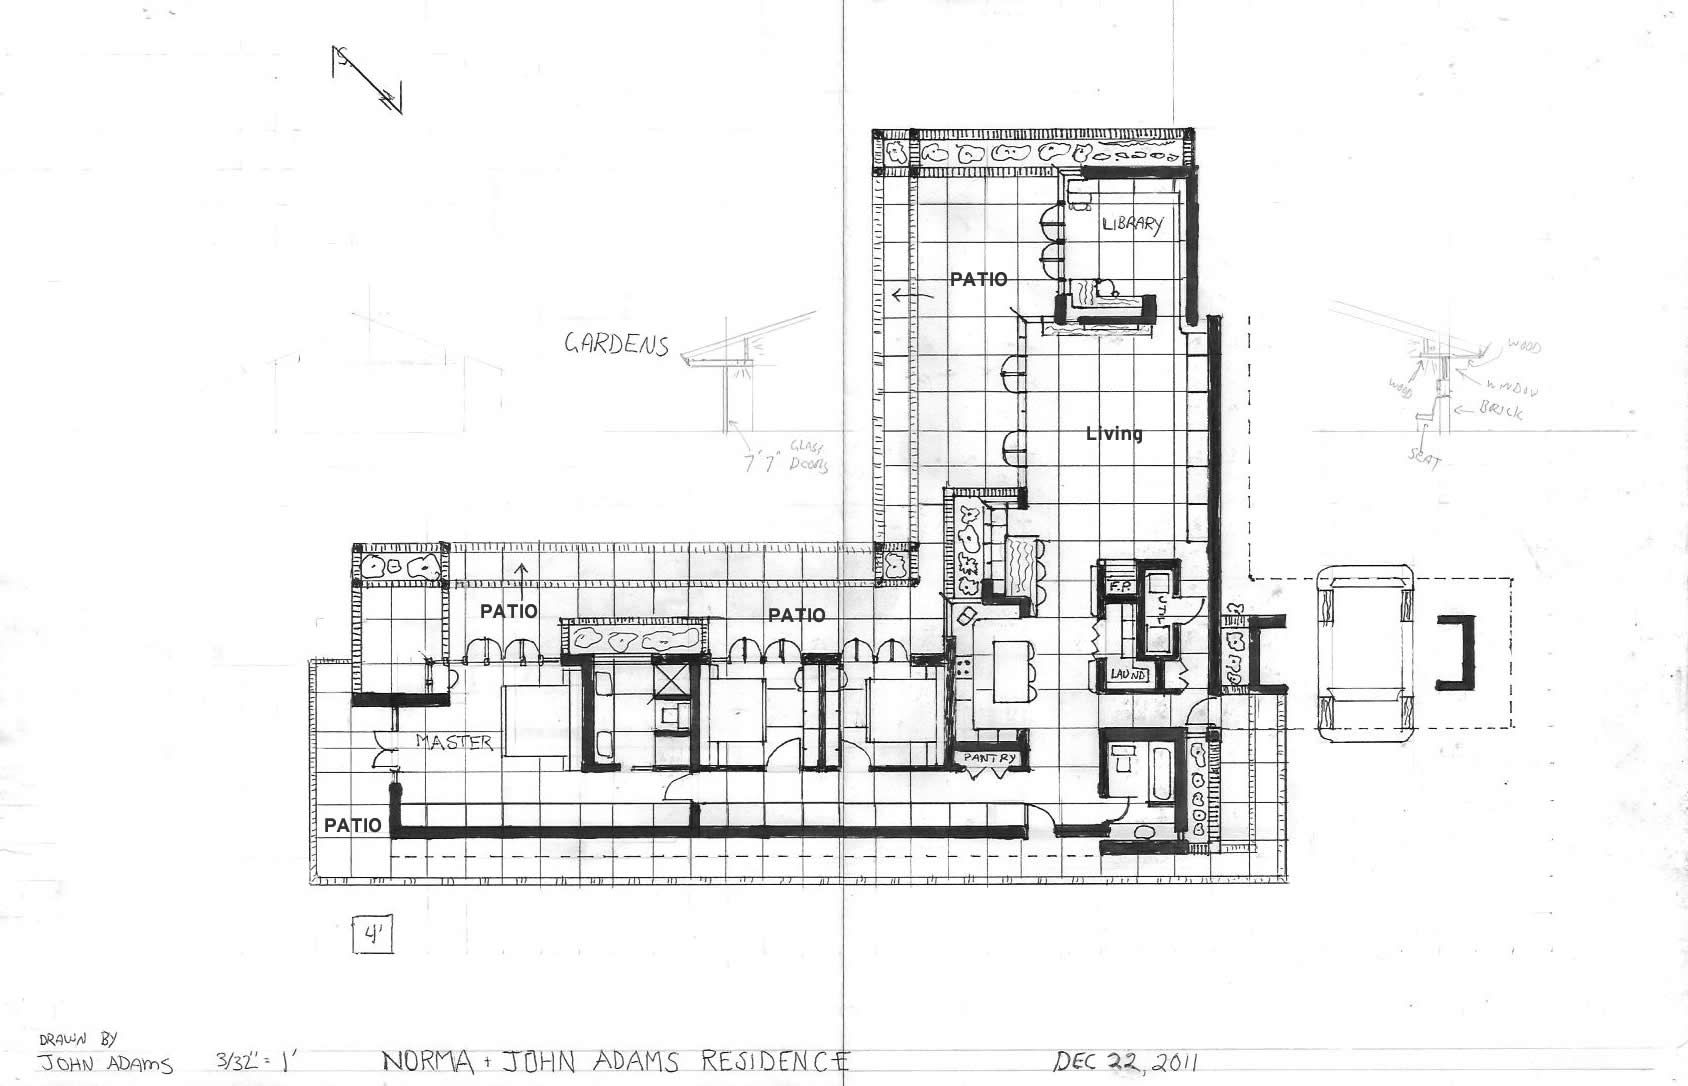 Plan houses design frank lloyd wright pesquisa google for Frank lloyd wright style house plans